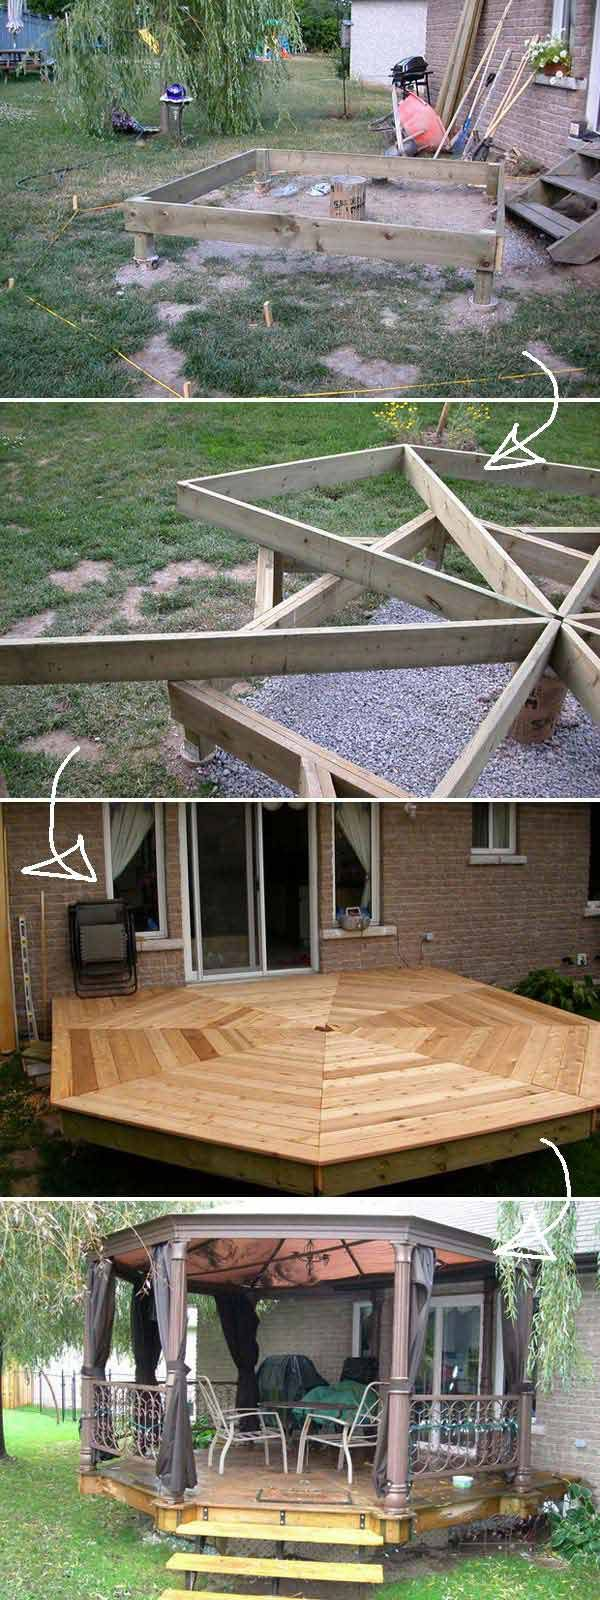 How to Build an Octagonal Deck | Top 19 Simple and Low-budget Ideas For Building a Floating Deck